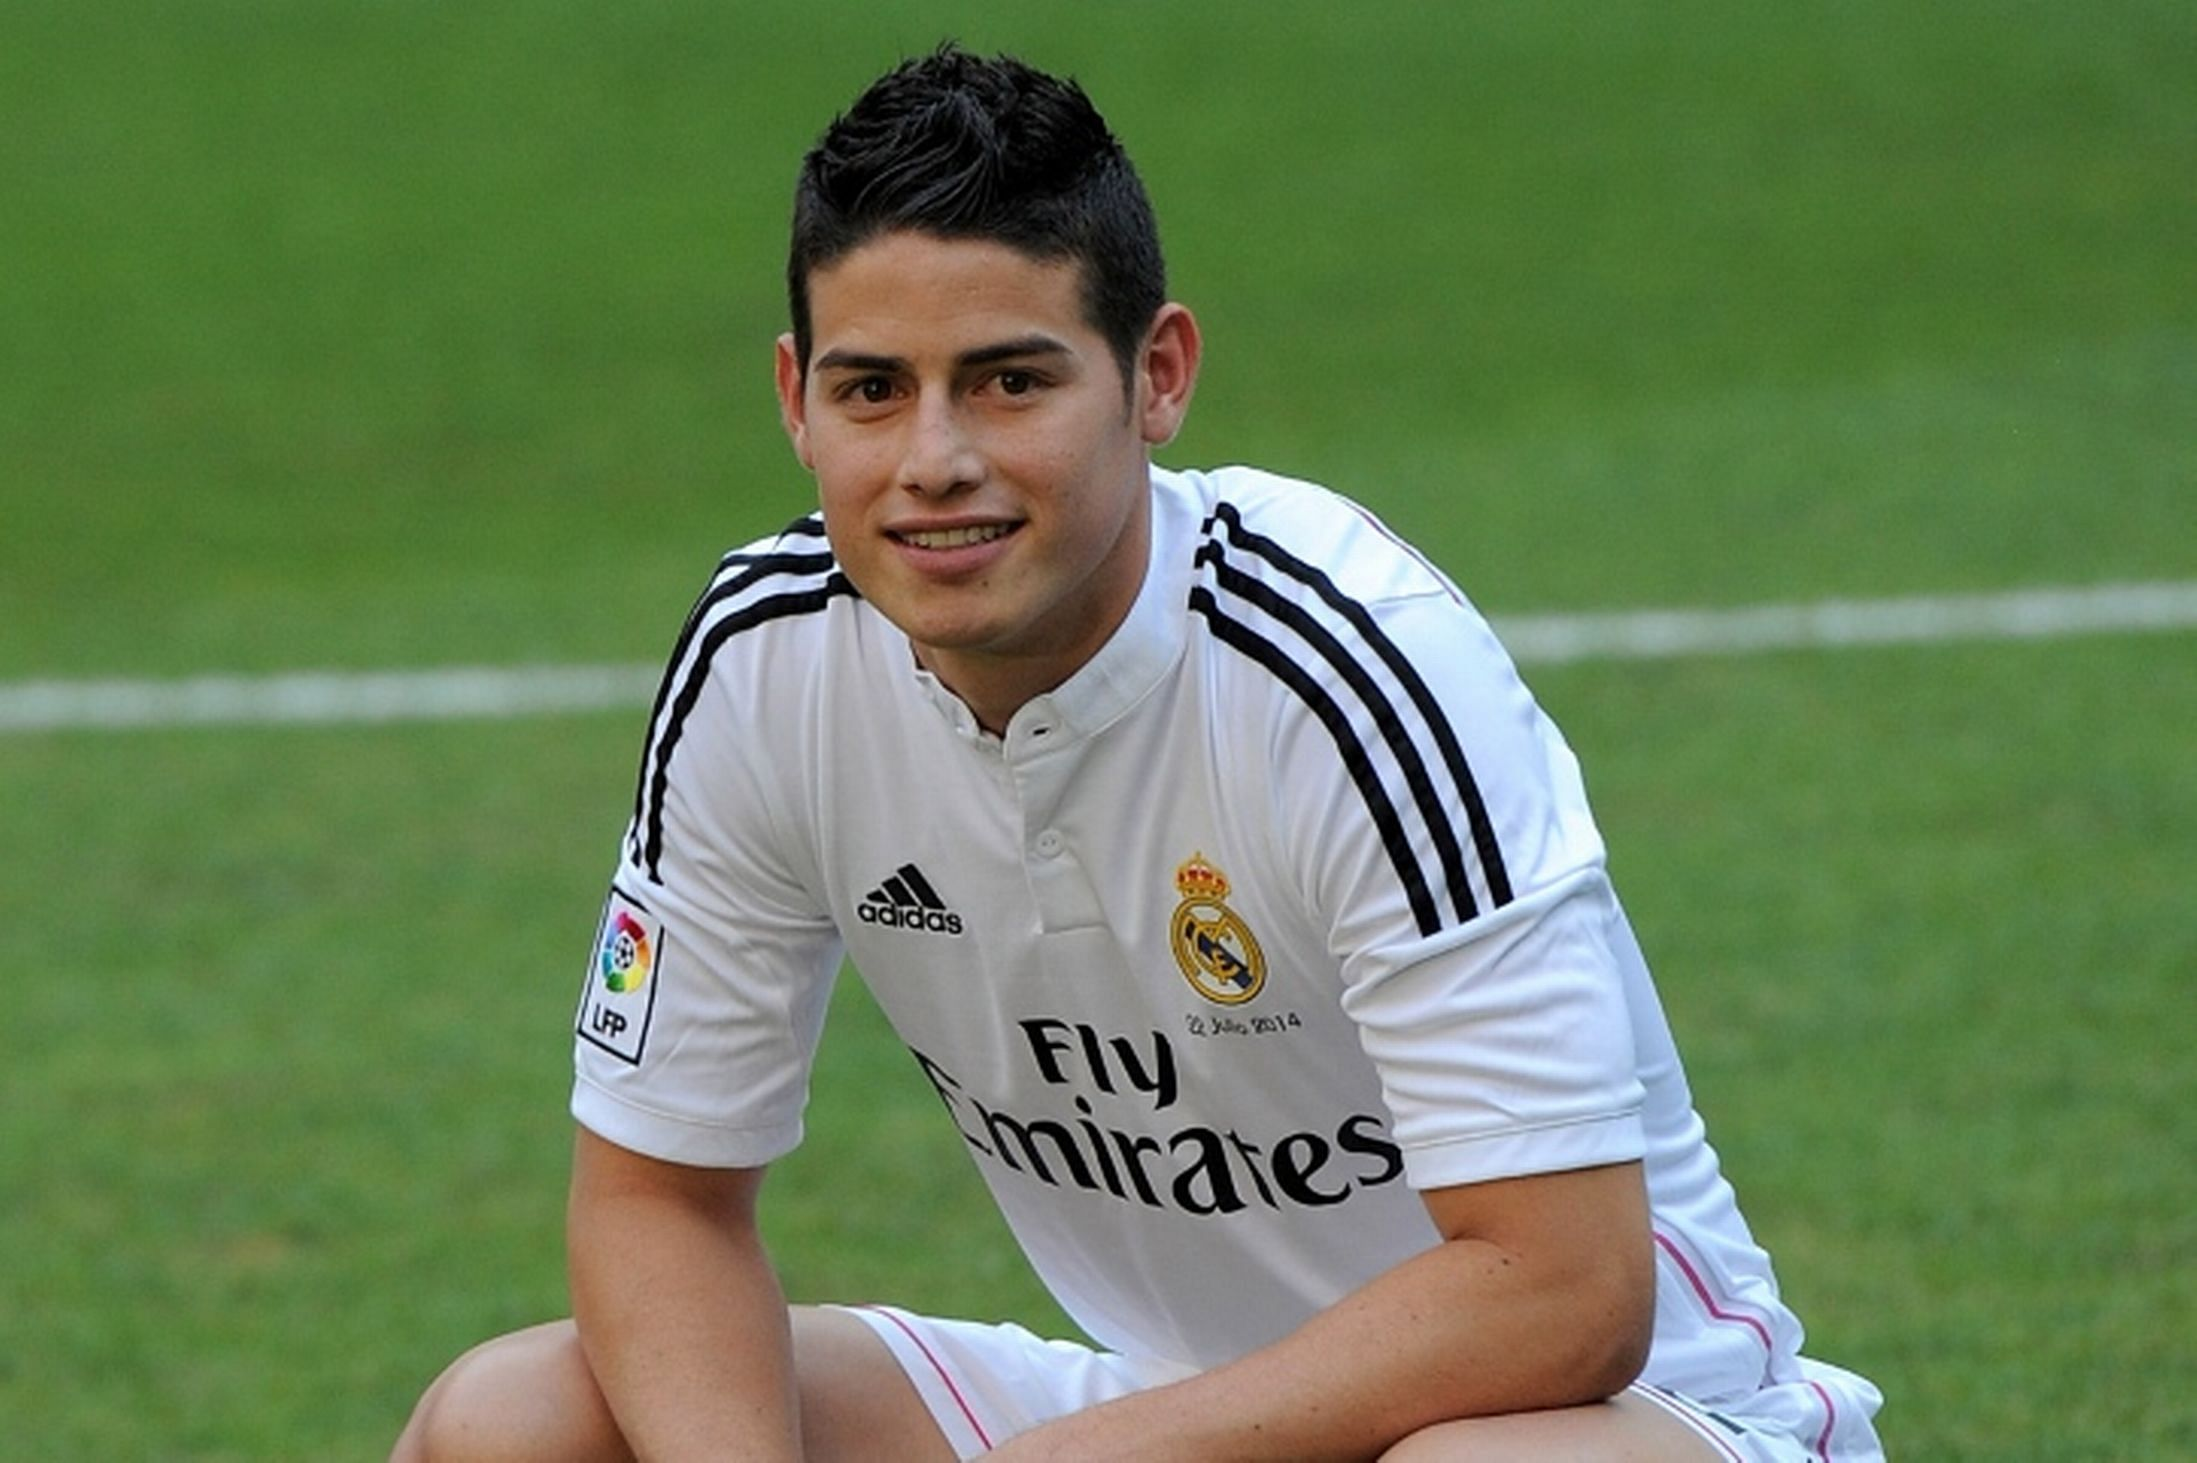 7 La Liga youngsters to watch out for in the 2014-15 season